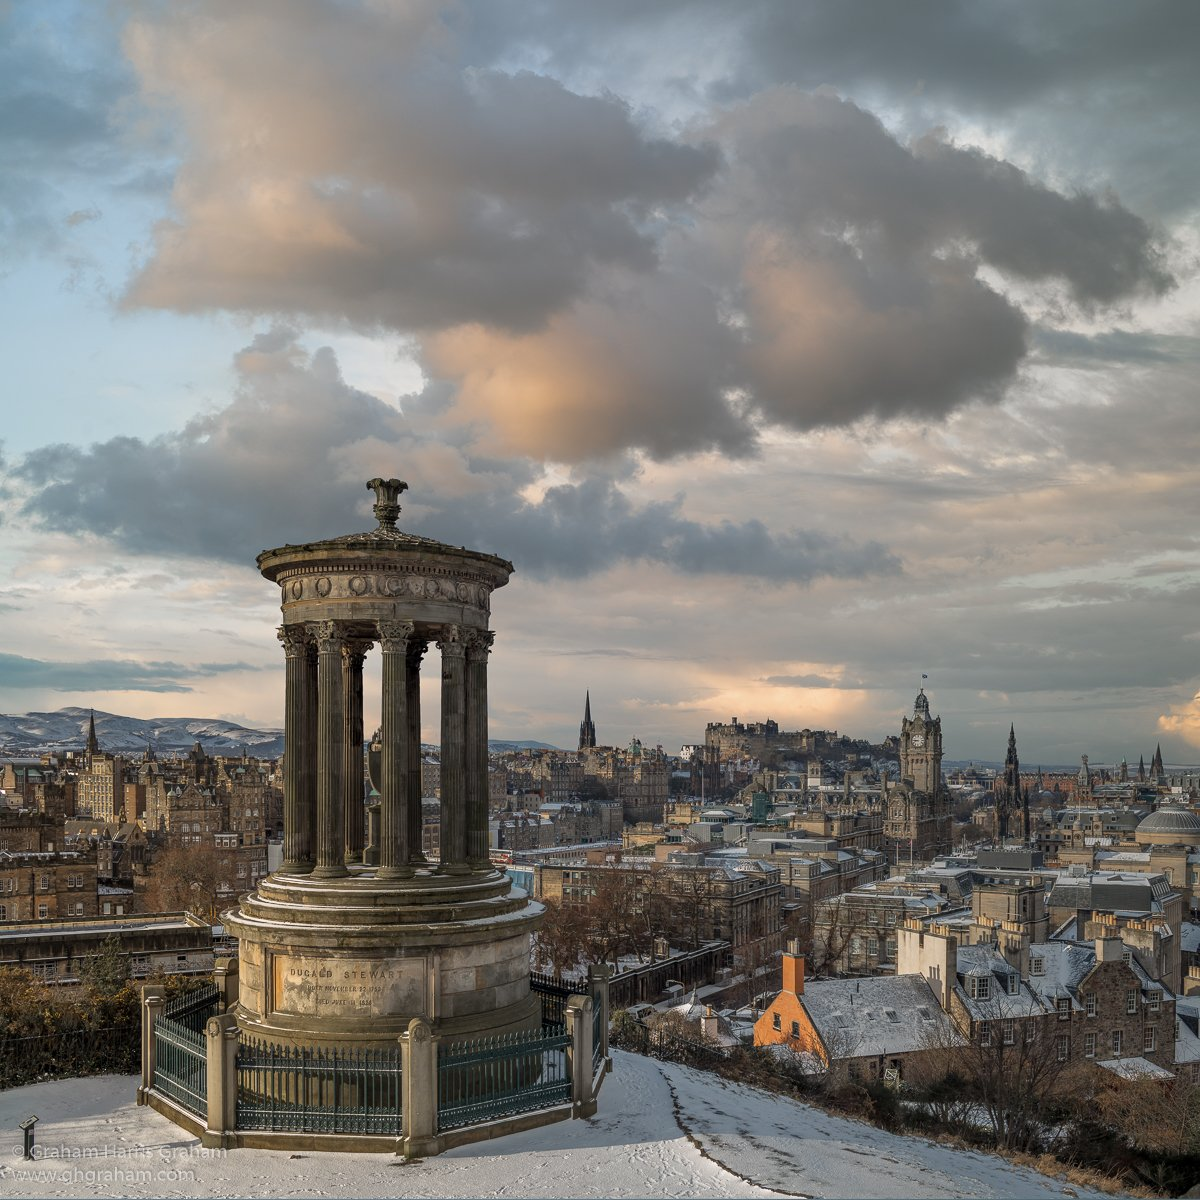 A rare, tourist free moment in #Edinburgh: daybreak in early March as a late winter storm finally clears from the snow covered city skyline. #Scotland<br>http://pic.twitter.com/HMlIKxyWgt